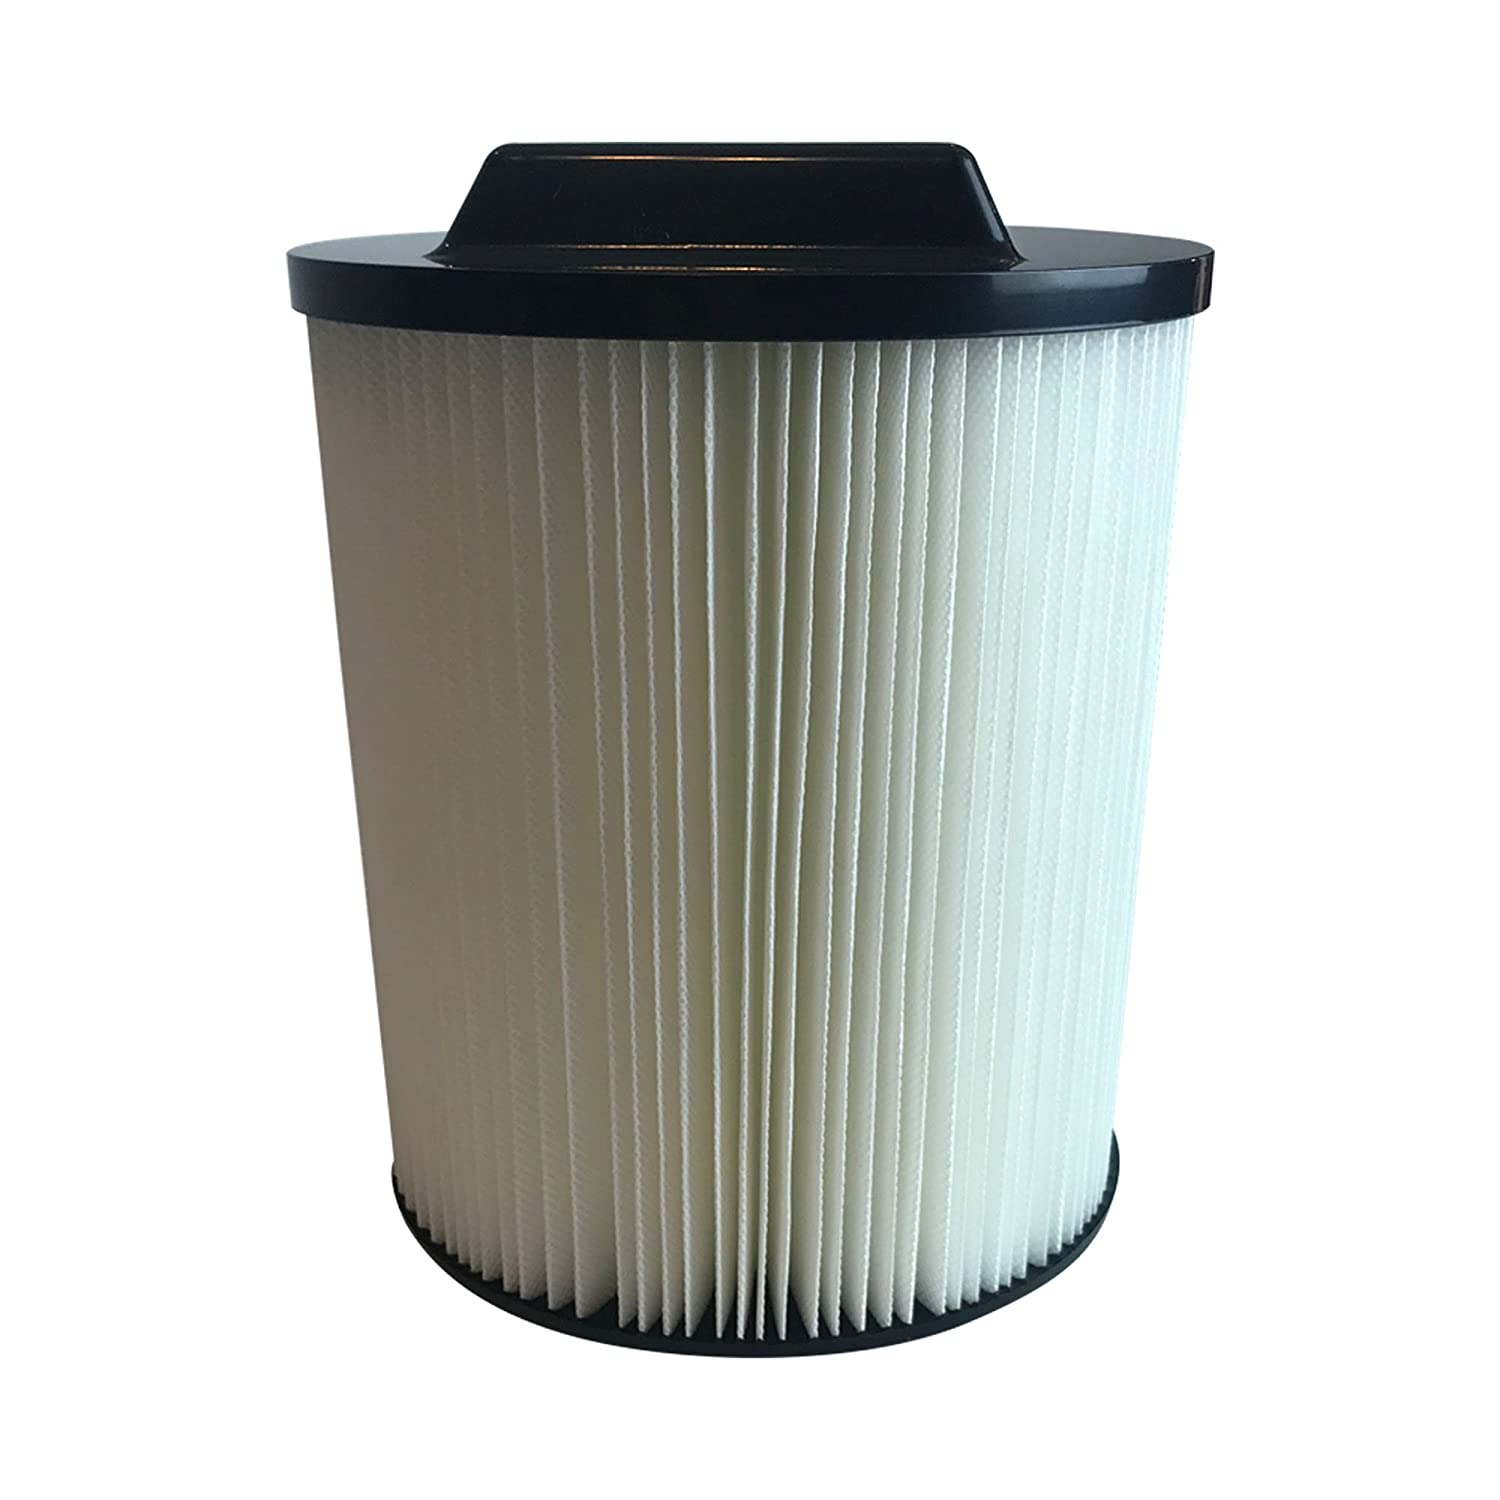 Crucial Vacuum Washable Wet/Dry Filter, Fits Rigid VF4000, Models 5 to 20-Gallon Ridgid Wet/Dry Vacs, Compare to Part No.72947 609722029995